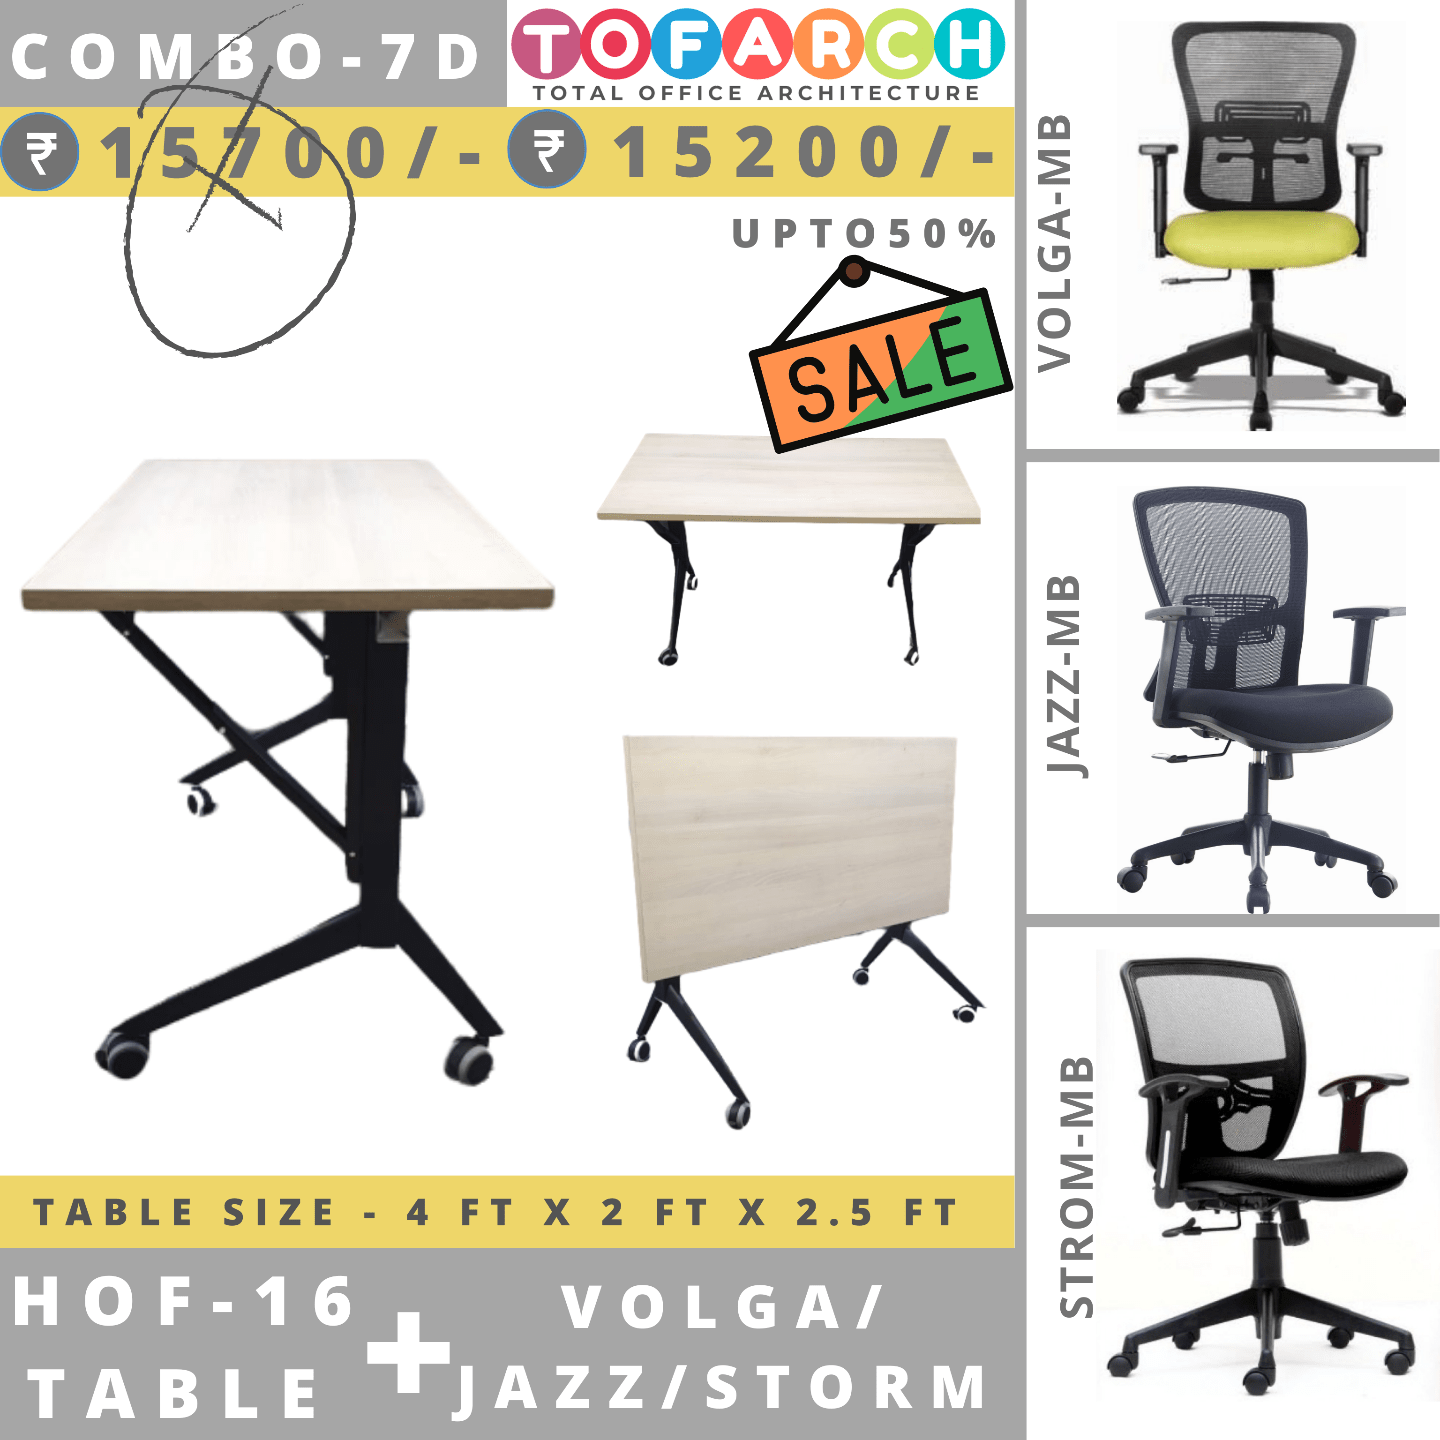 Table Chair Combo - 7D (HOF 16 Table + VOLGA / JAZZ / STROM Chair)